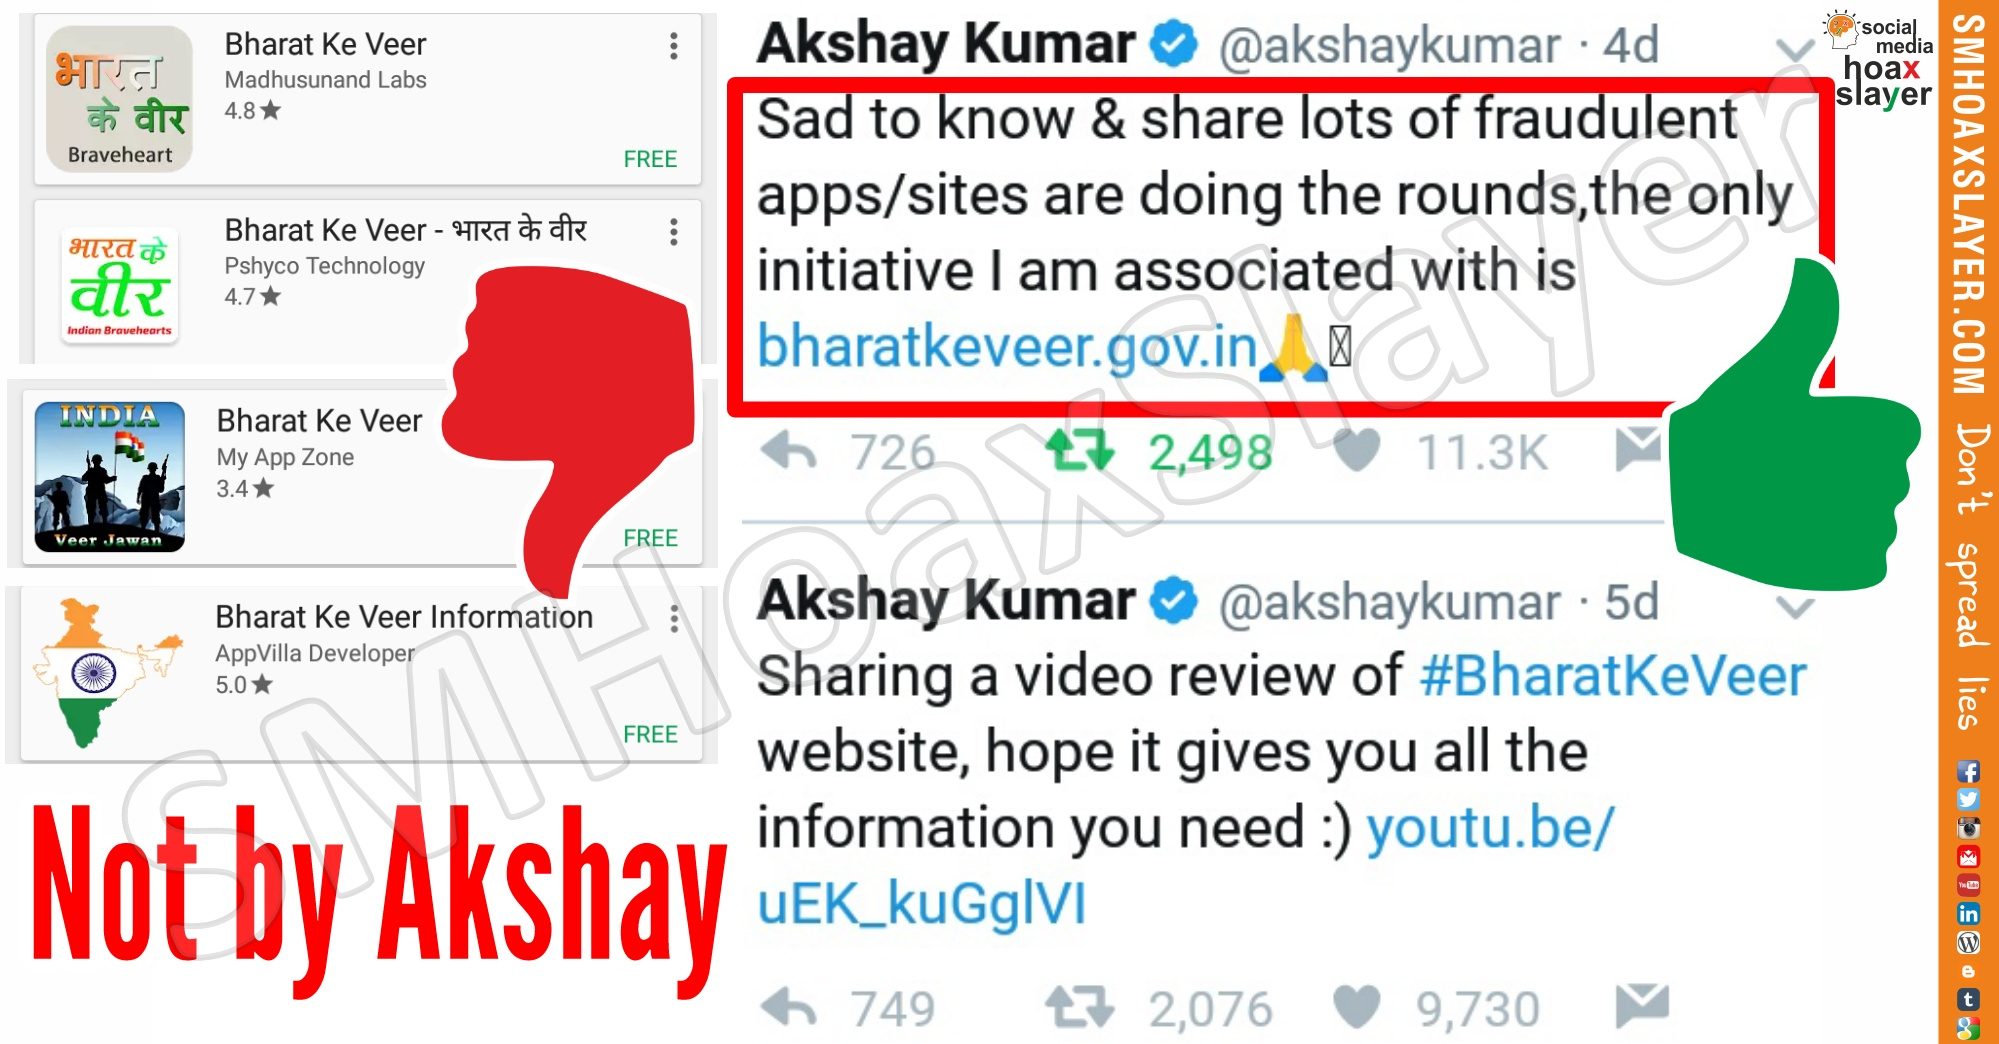 "None of the Apps ""Bharat Ke Veer"" are related to @AkshayKumar, his initiative is a website with the same name."